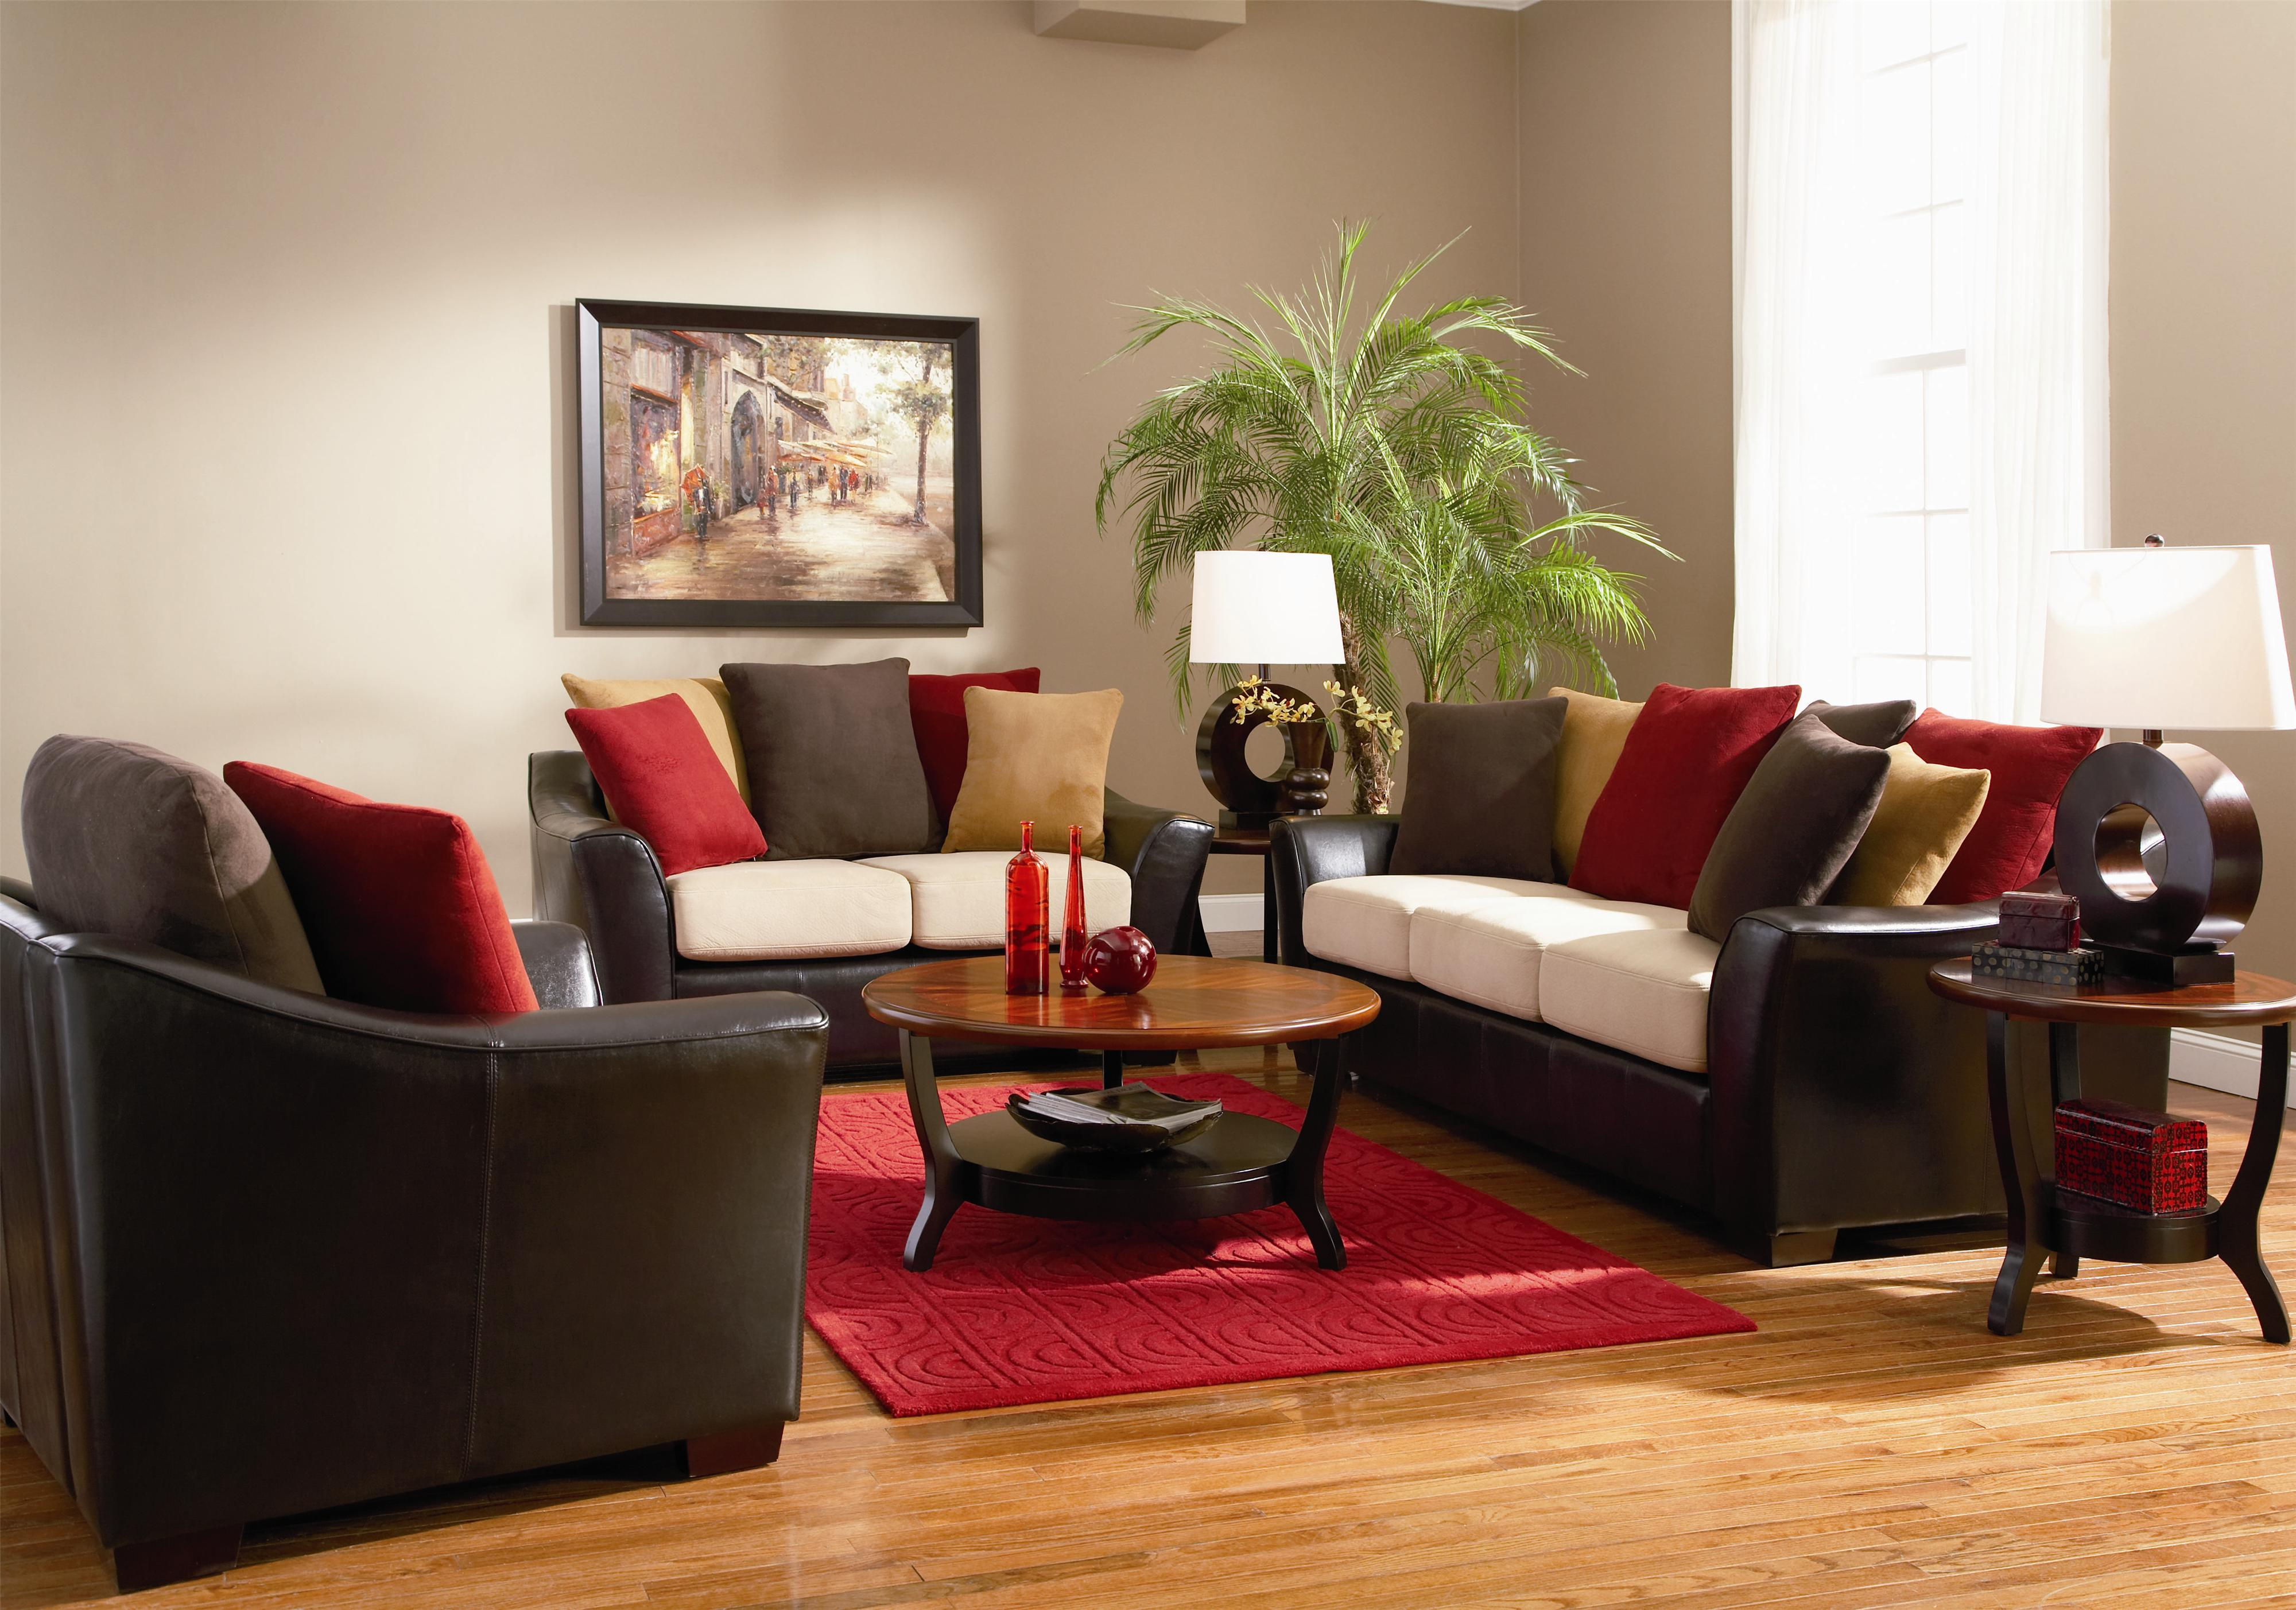 It's likely you and your guests will spend countless hours in this room, discussing and entertaining. Black Furniture Living Room Ideas - HomesFeed